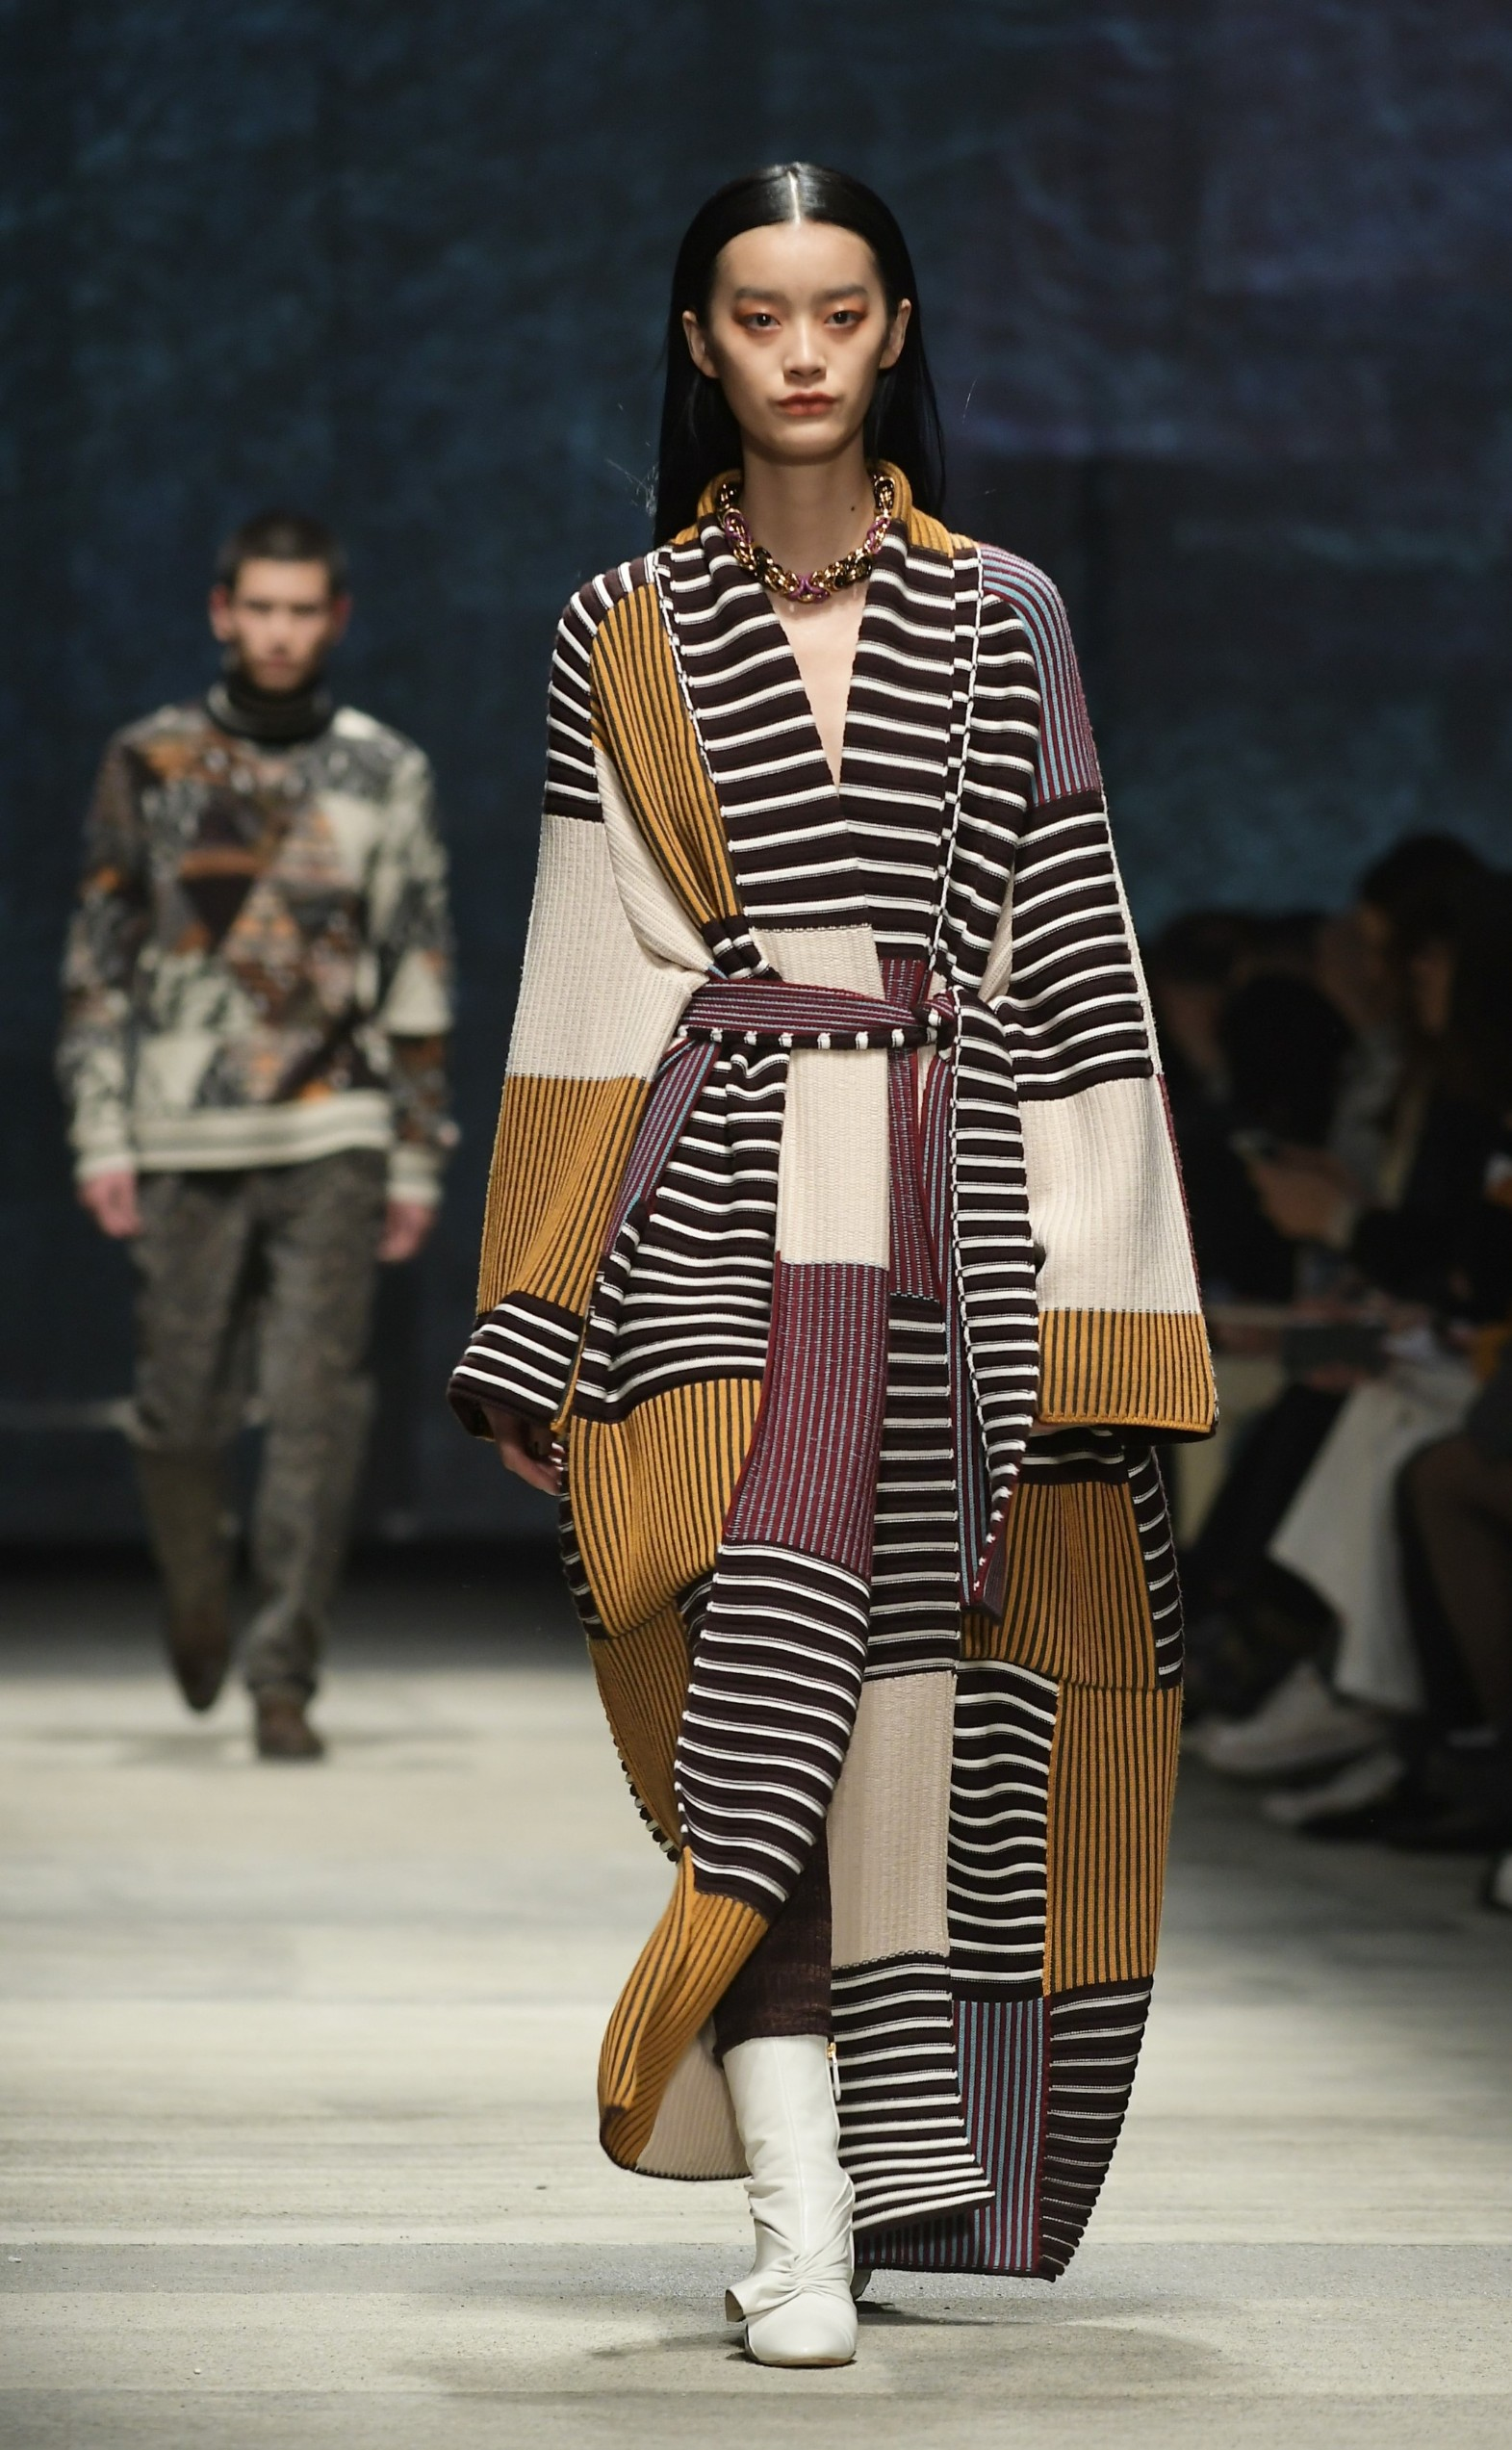 2/23/2020 - Milan, Italy MFW MISSONI photocall and show MILANO FASHION WEEK woman Fall-Winter 2020-21 In the photo: MISSONI show, Image: 500367099, License: Rights-managed, Restrictions: *** NO SALES UK AND ITALY***, Model Release: no, Credit line: IPA / ddp USA / Profimedia